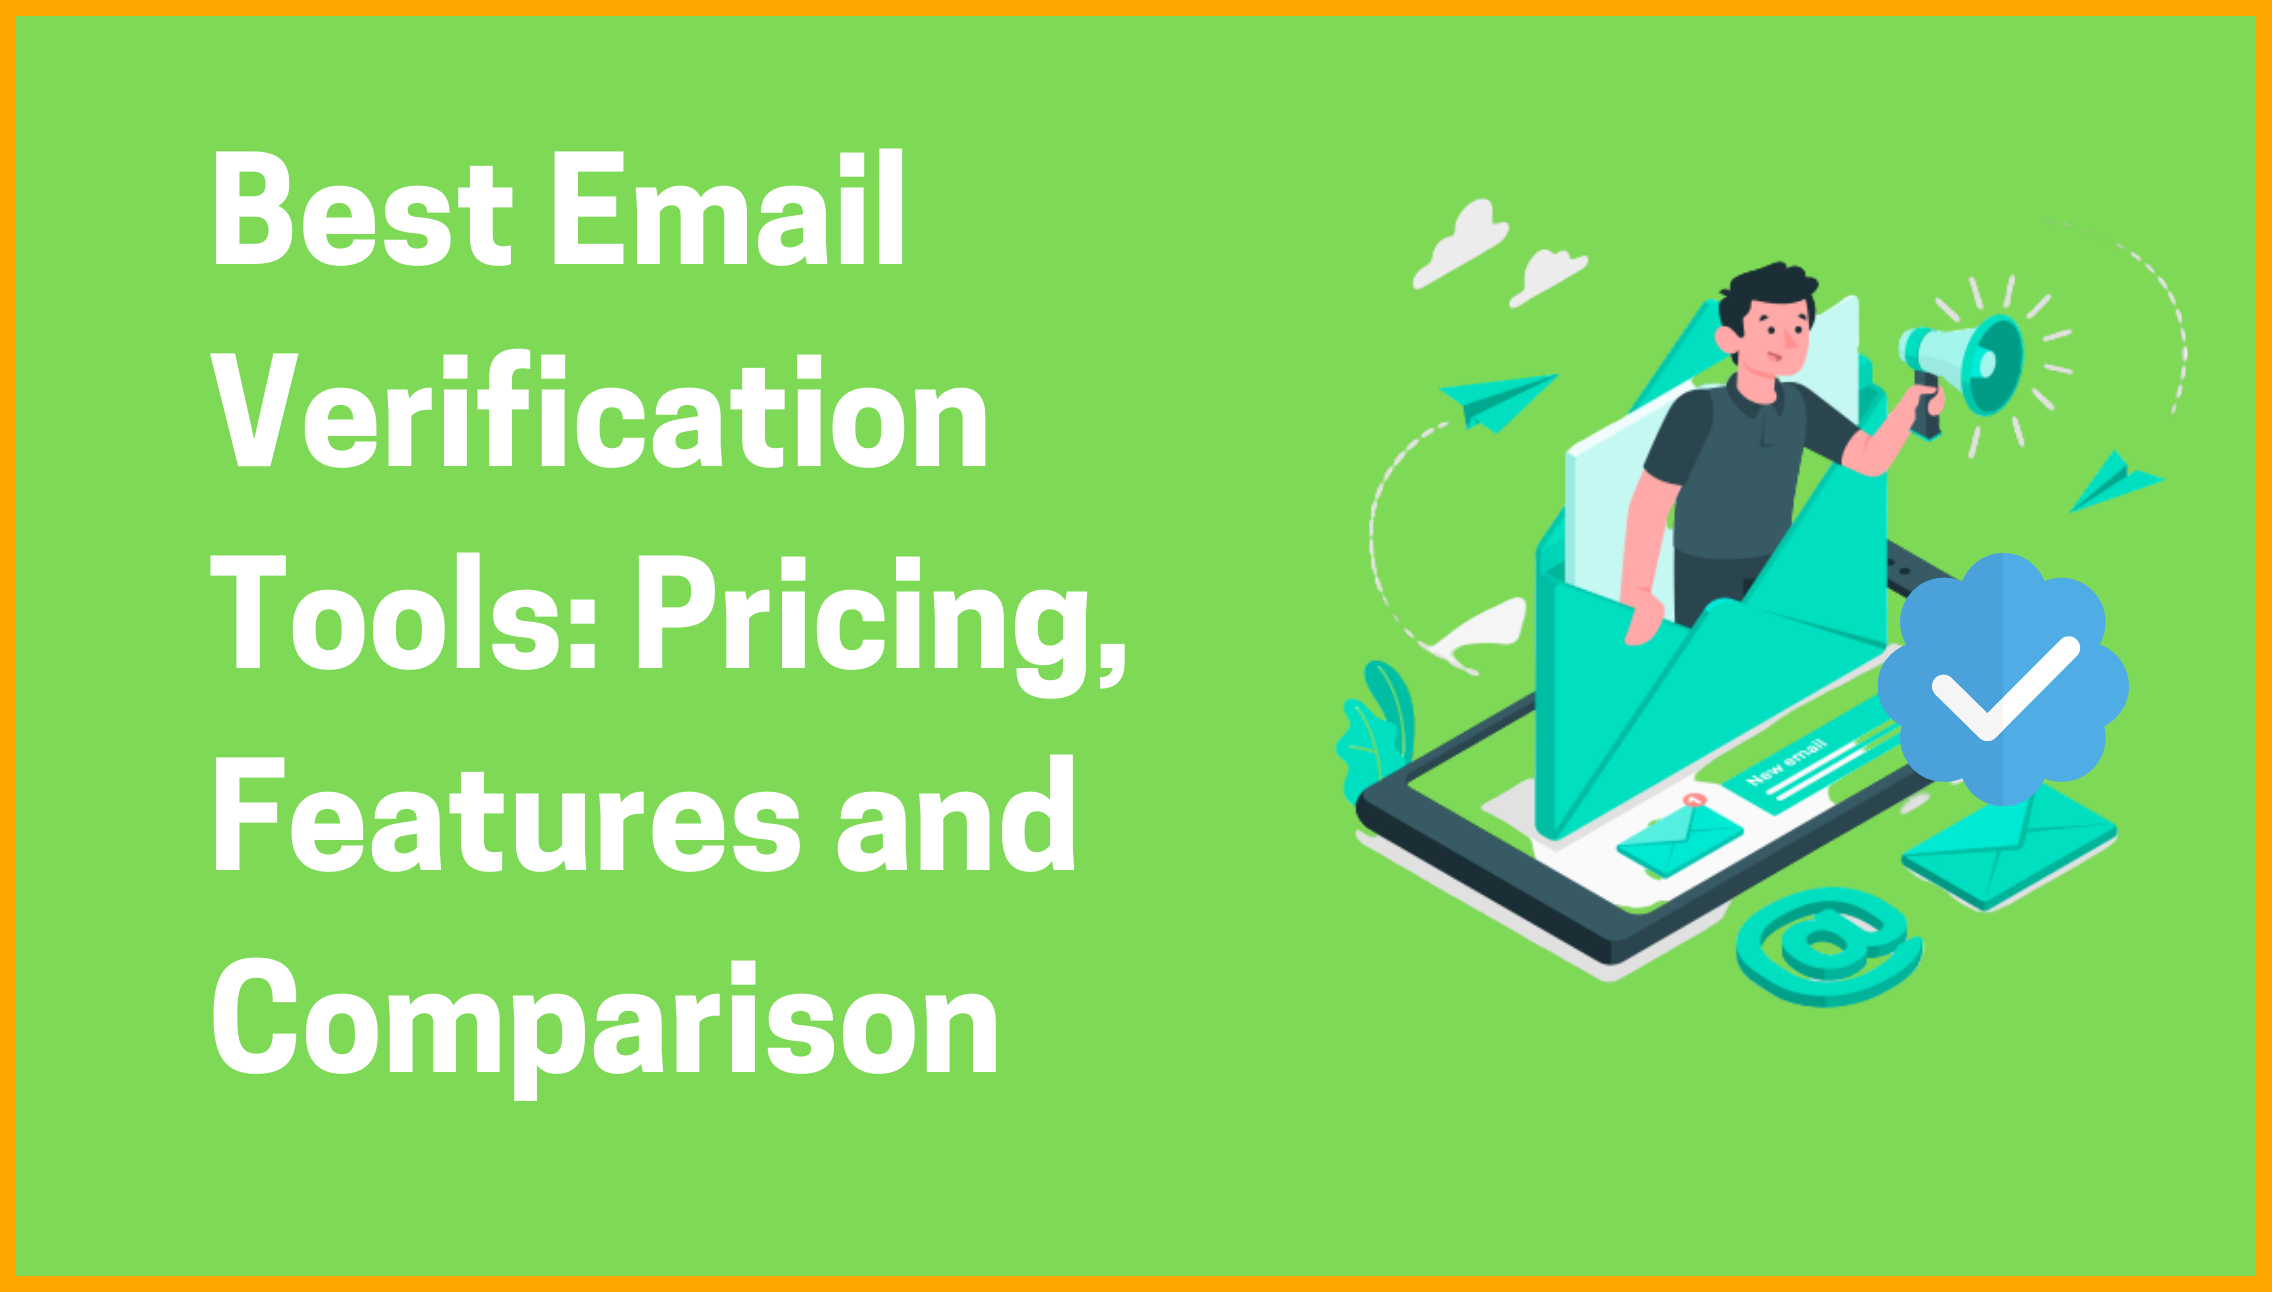 Best Email Verification Tools: Pricing, Features, and Comparison